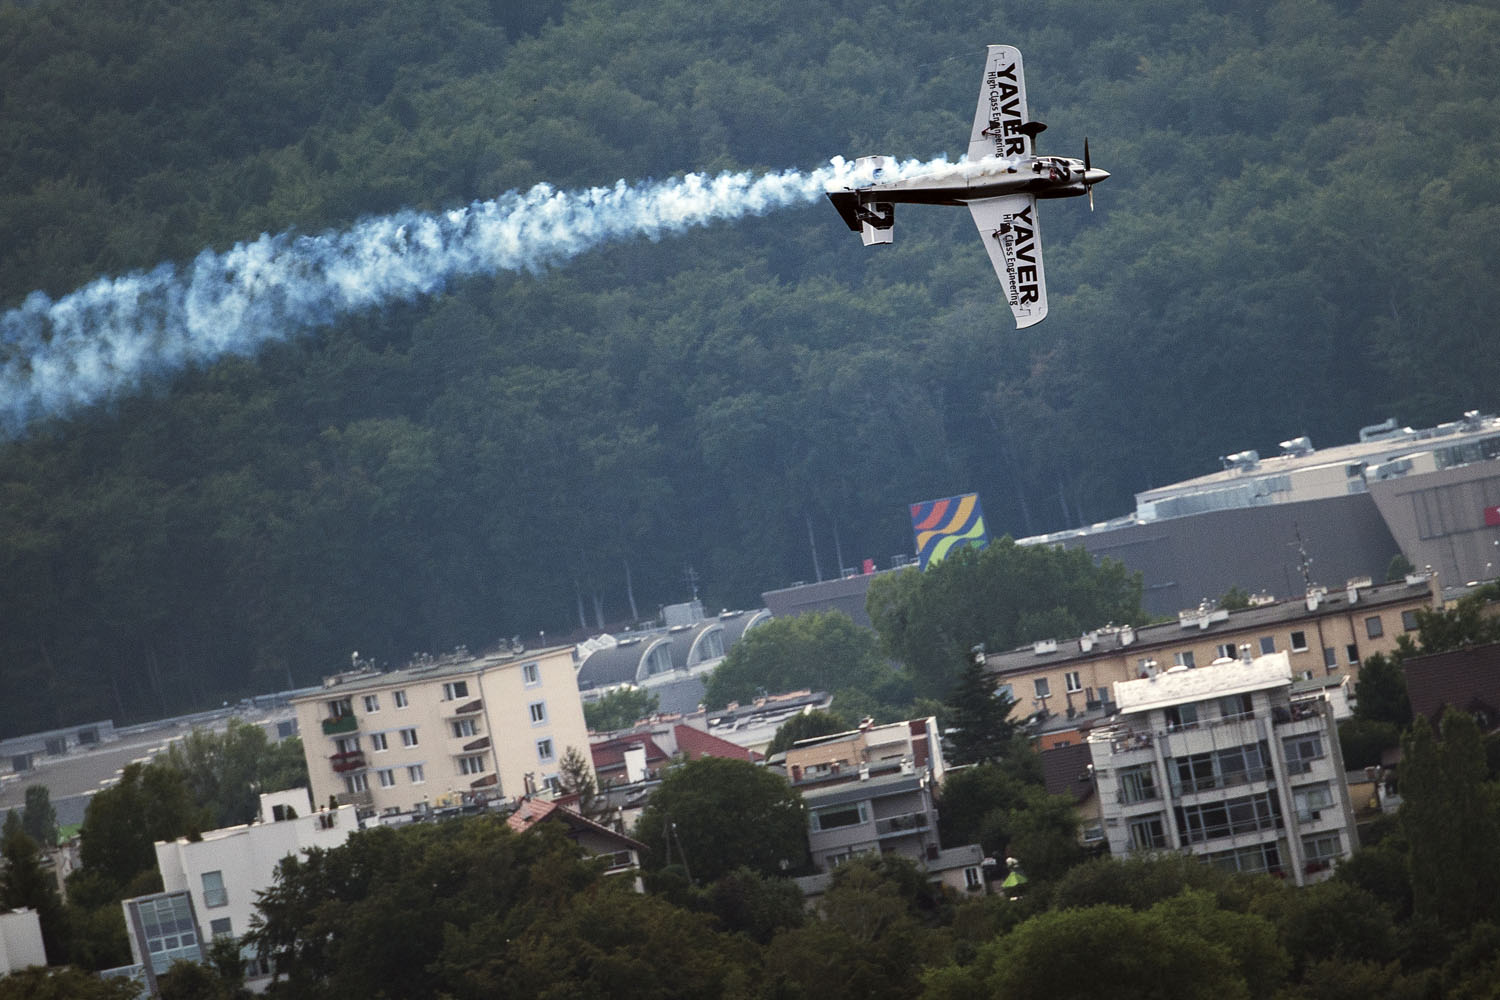 Hannes Arch of Austria performs during the finals for the fourth stage of the Red Bull Air Race World Championship in Gdynia, Poland.